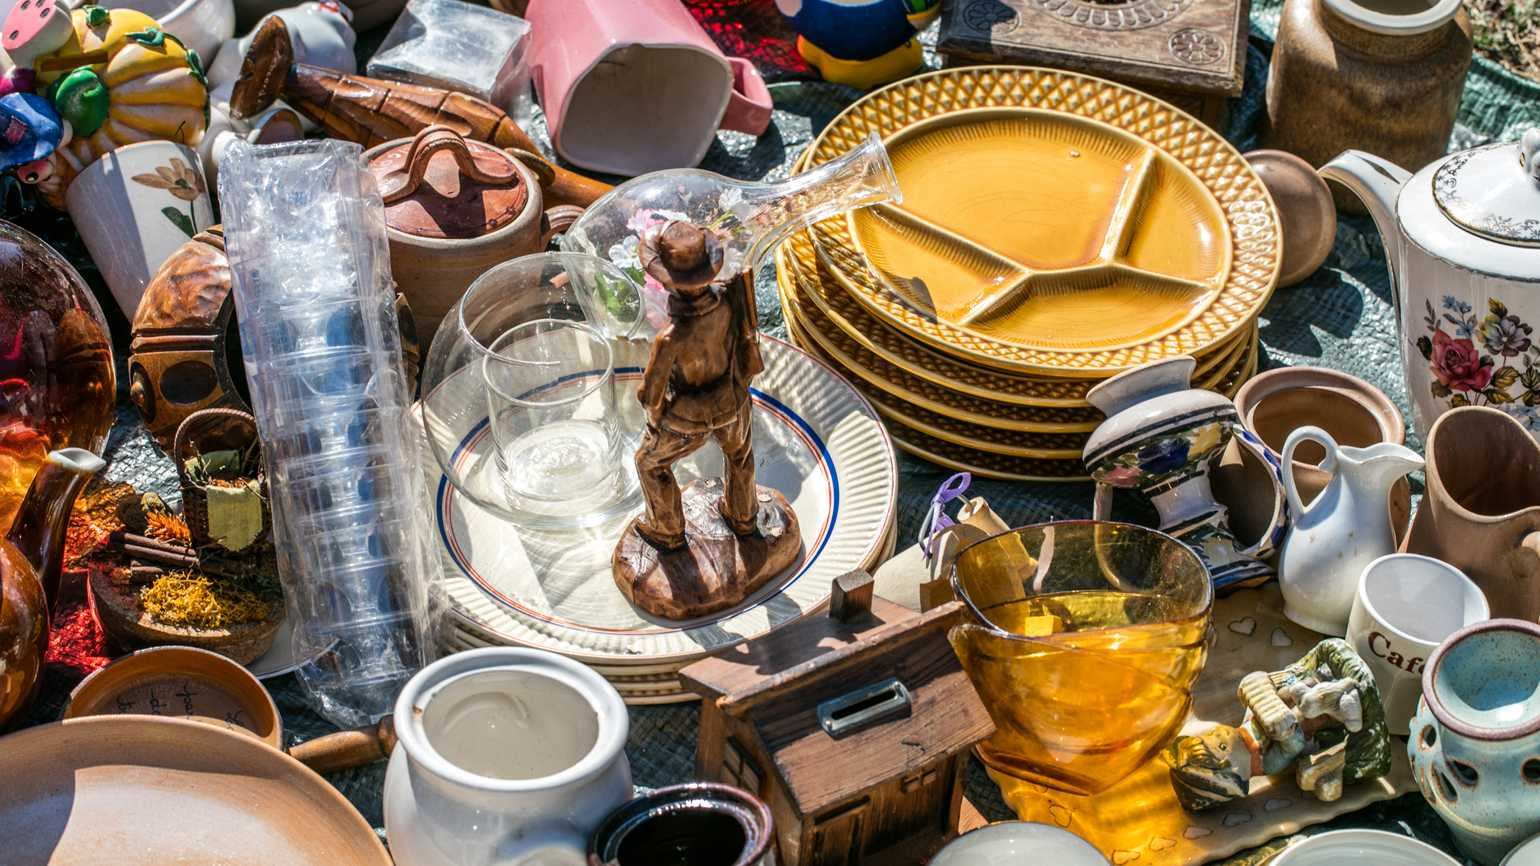 Thrift store merchandise; Getty Images